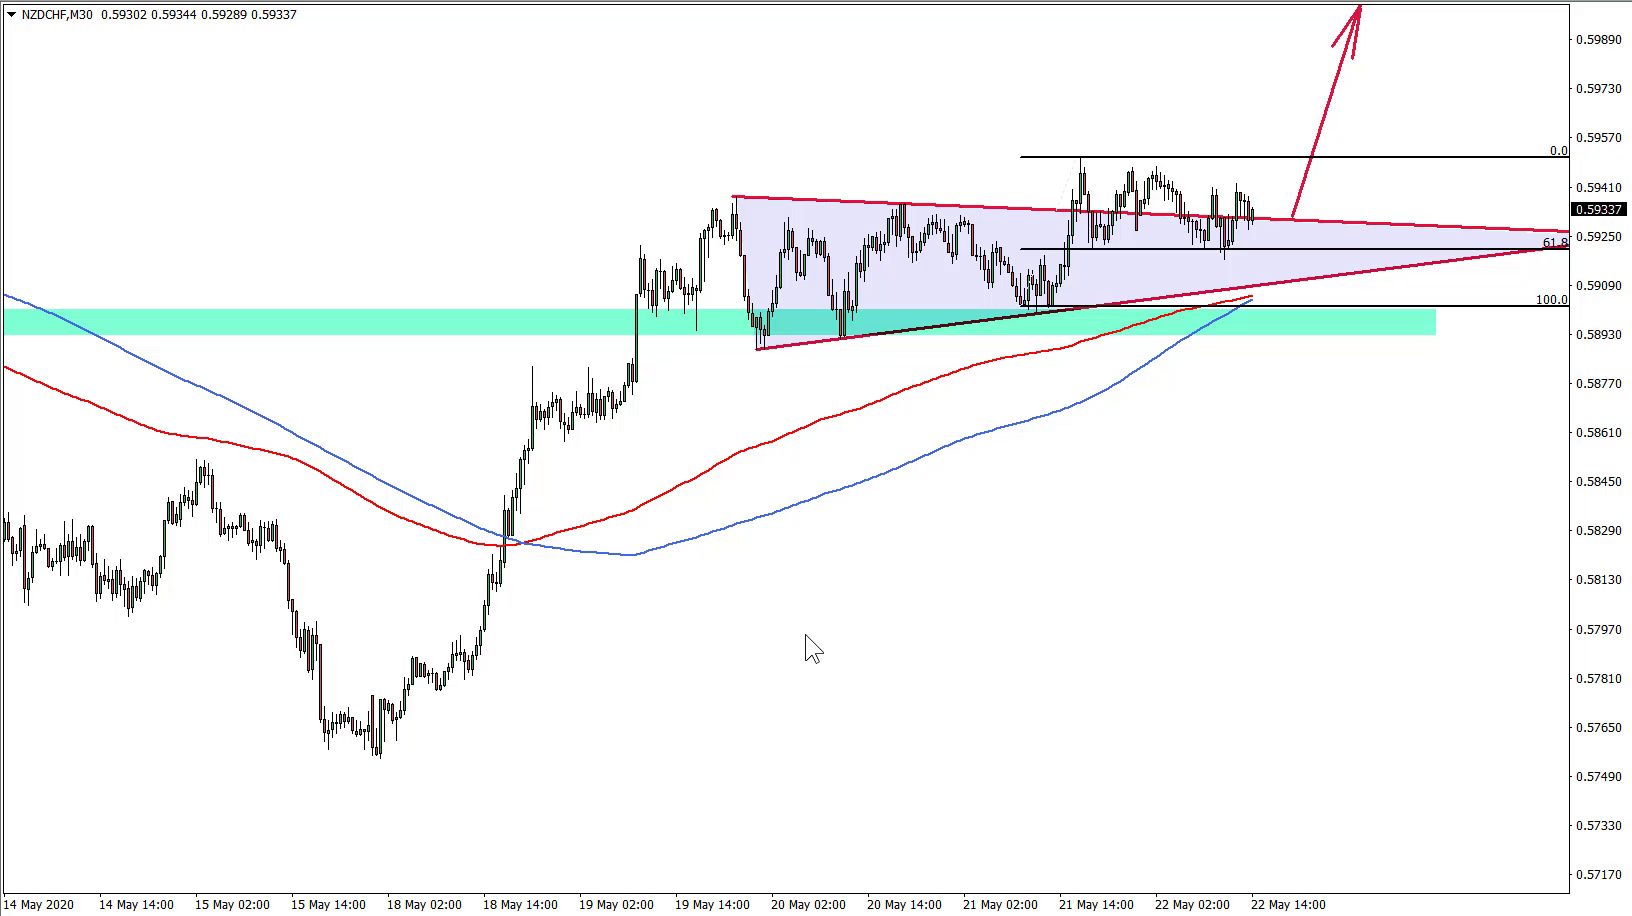 NZDCHF Trade Idea May 22nd 2020